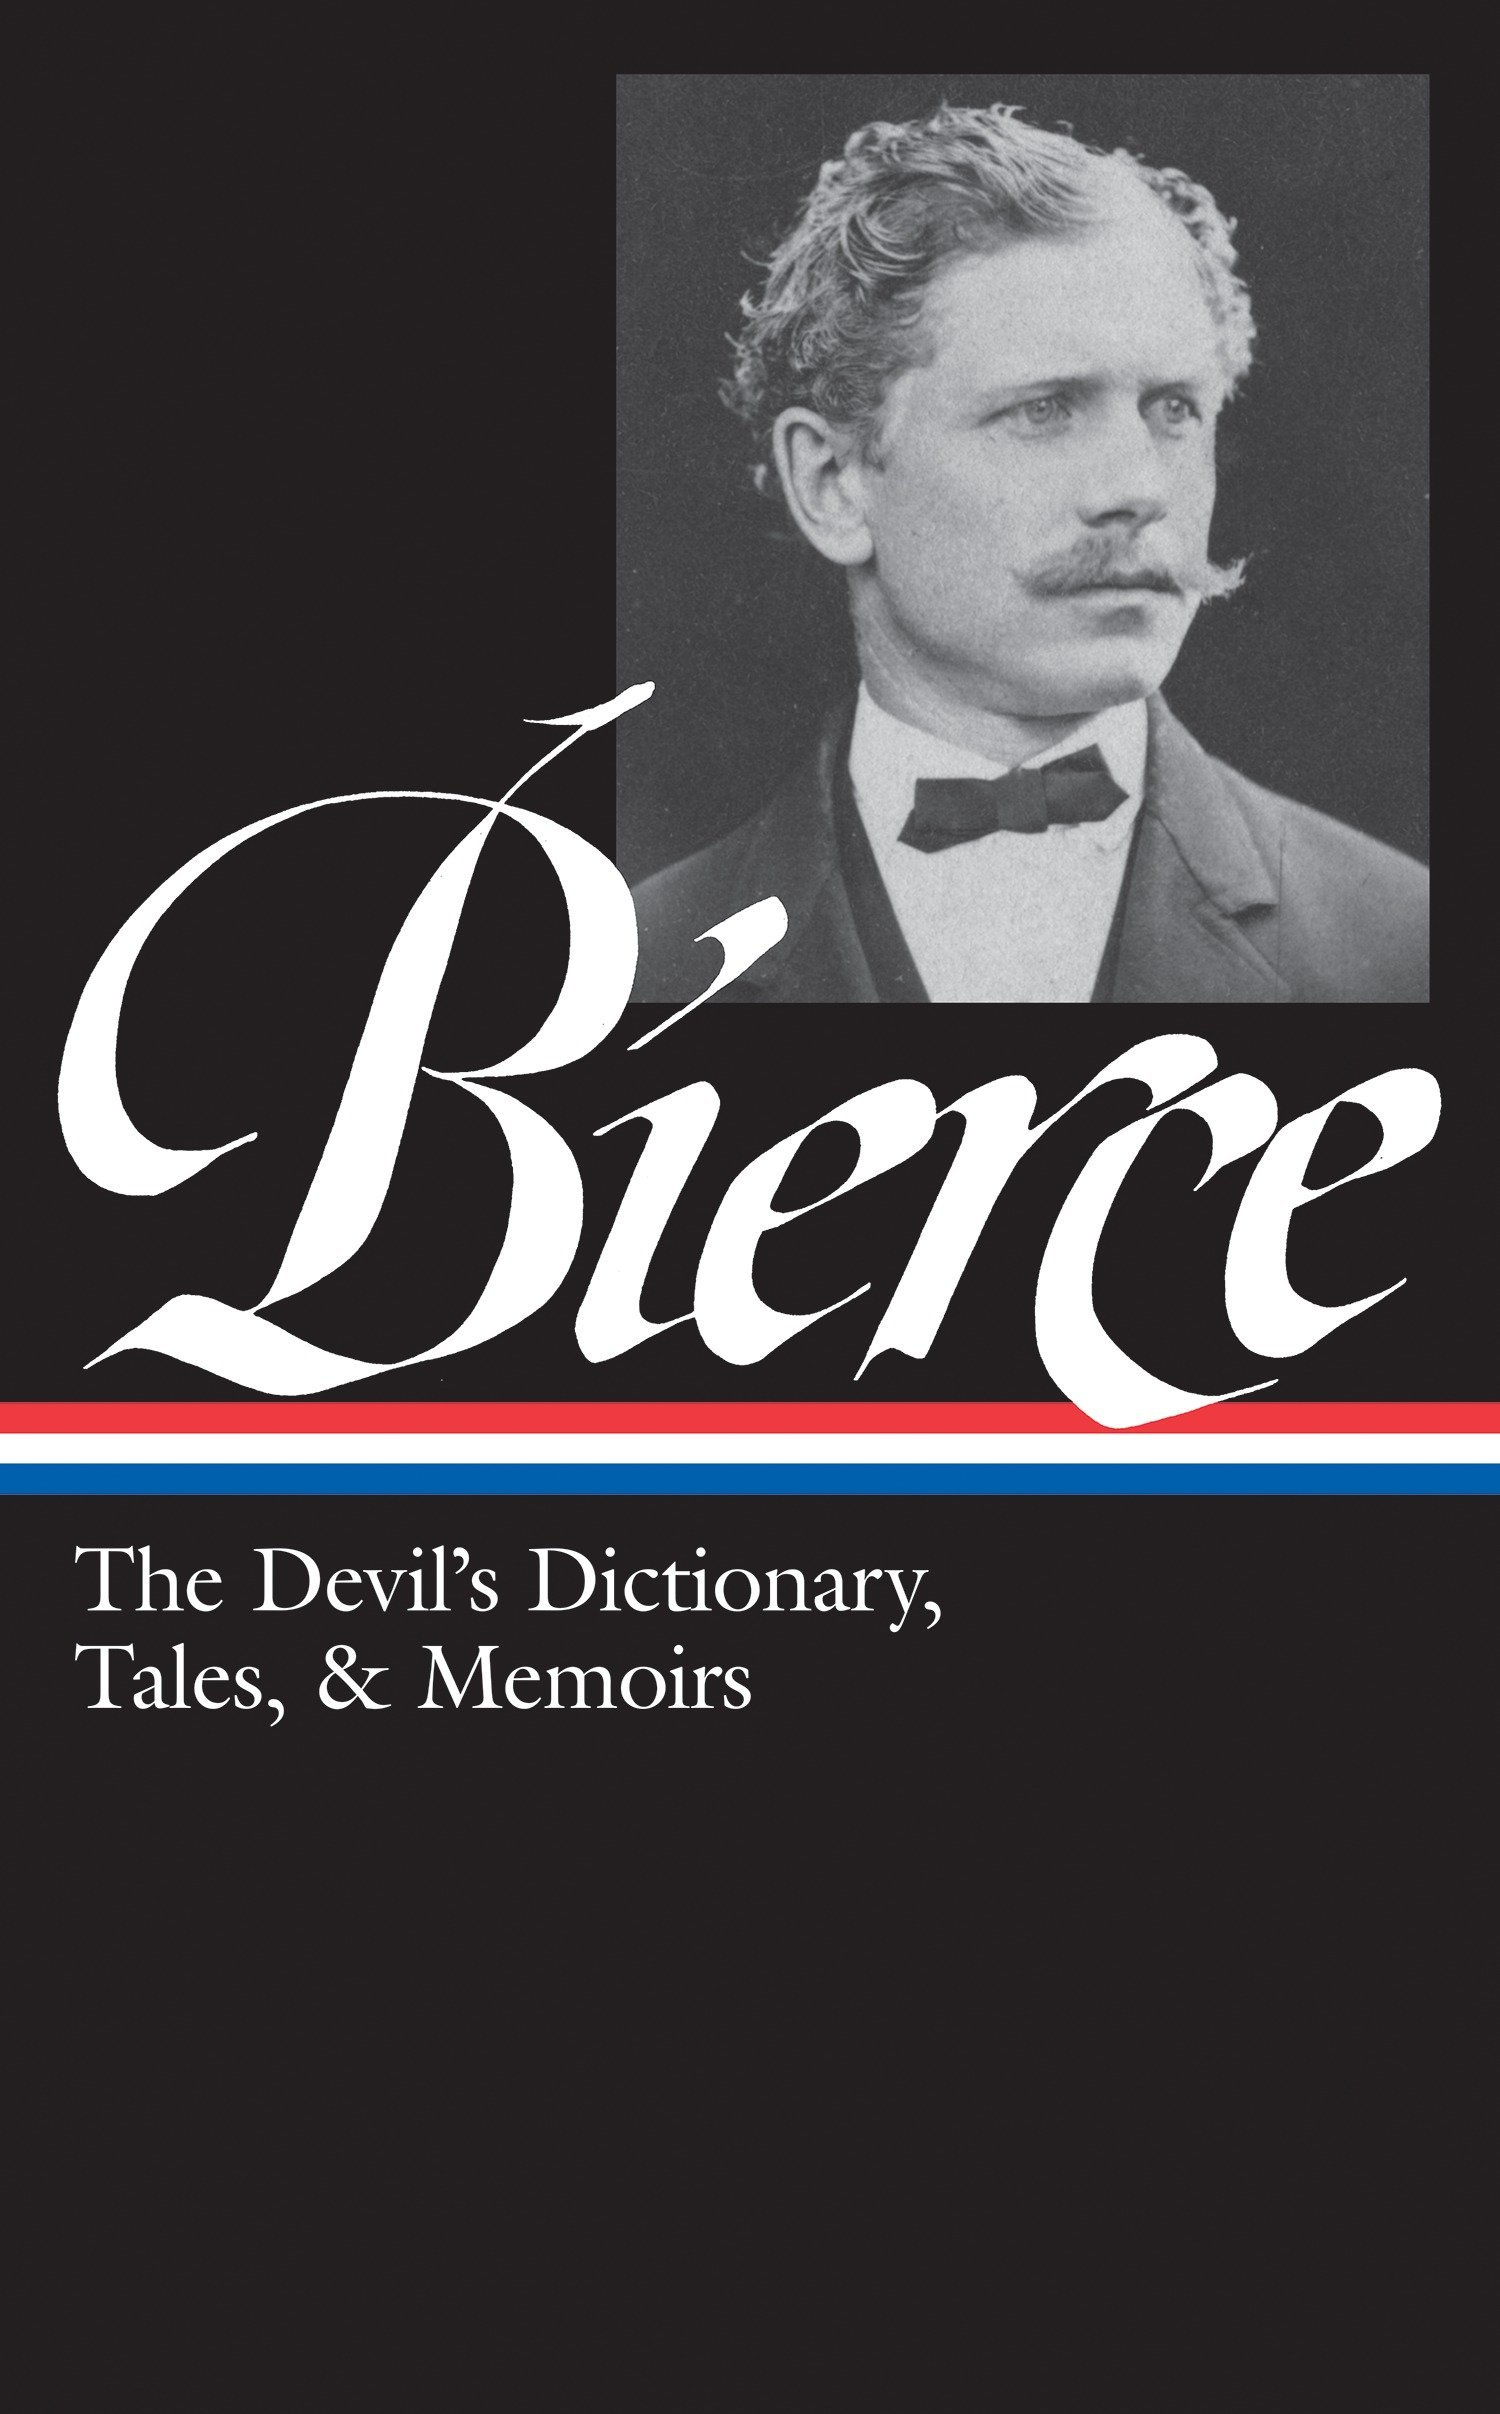 Ambrose Bierce: The Devil's Dictionary, Tales, & Memoirs (LOA #219): In the Midst of Life (Tales of Soldiers and Civilians) / Can Such Things Be? / ... / selected stories (Library of America)